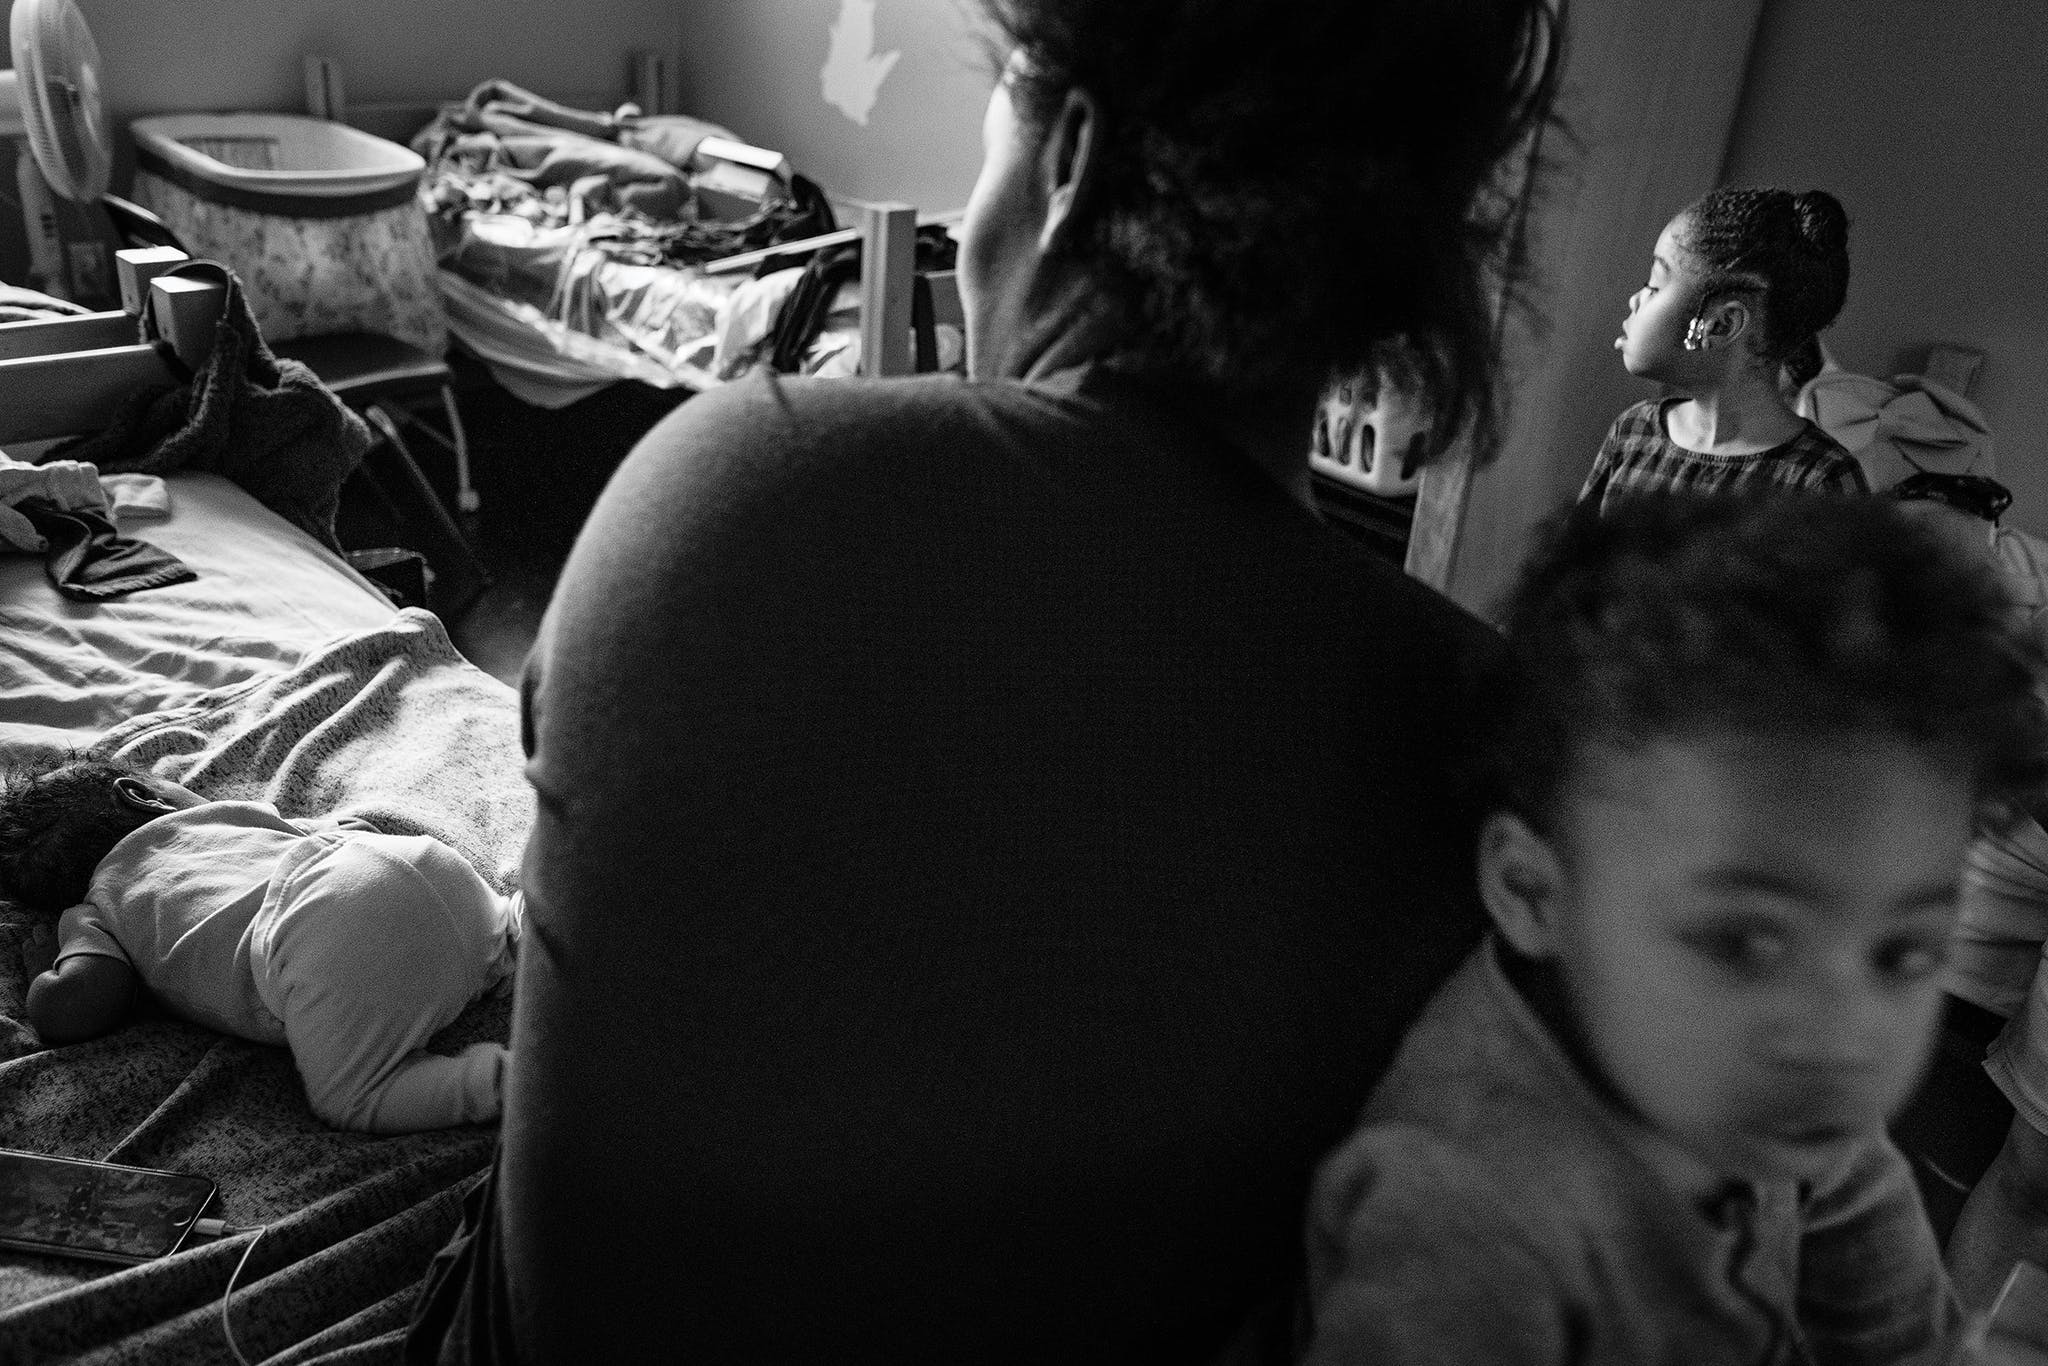 Whitney Bryant sits in her room at a shelter with three of her children—Kadyn, 6, Kasir, 2, and Khali, an infant—in February 2020.